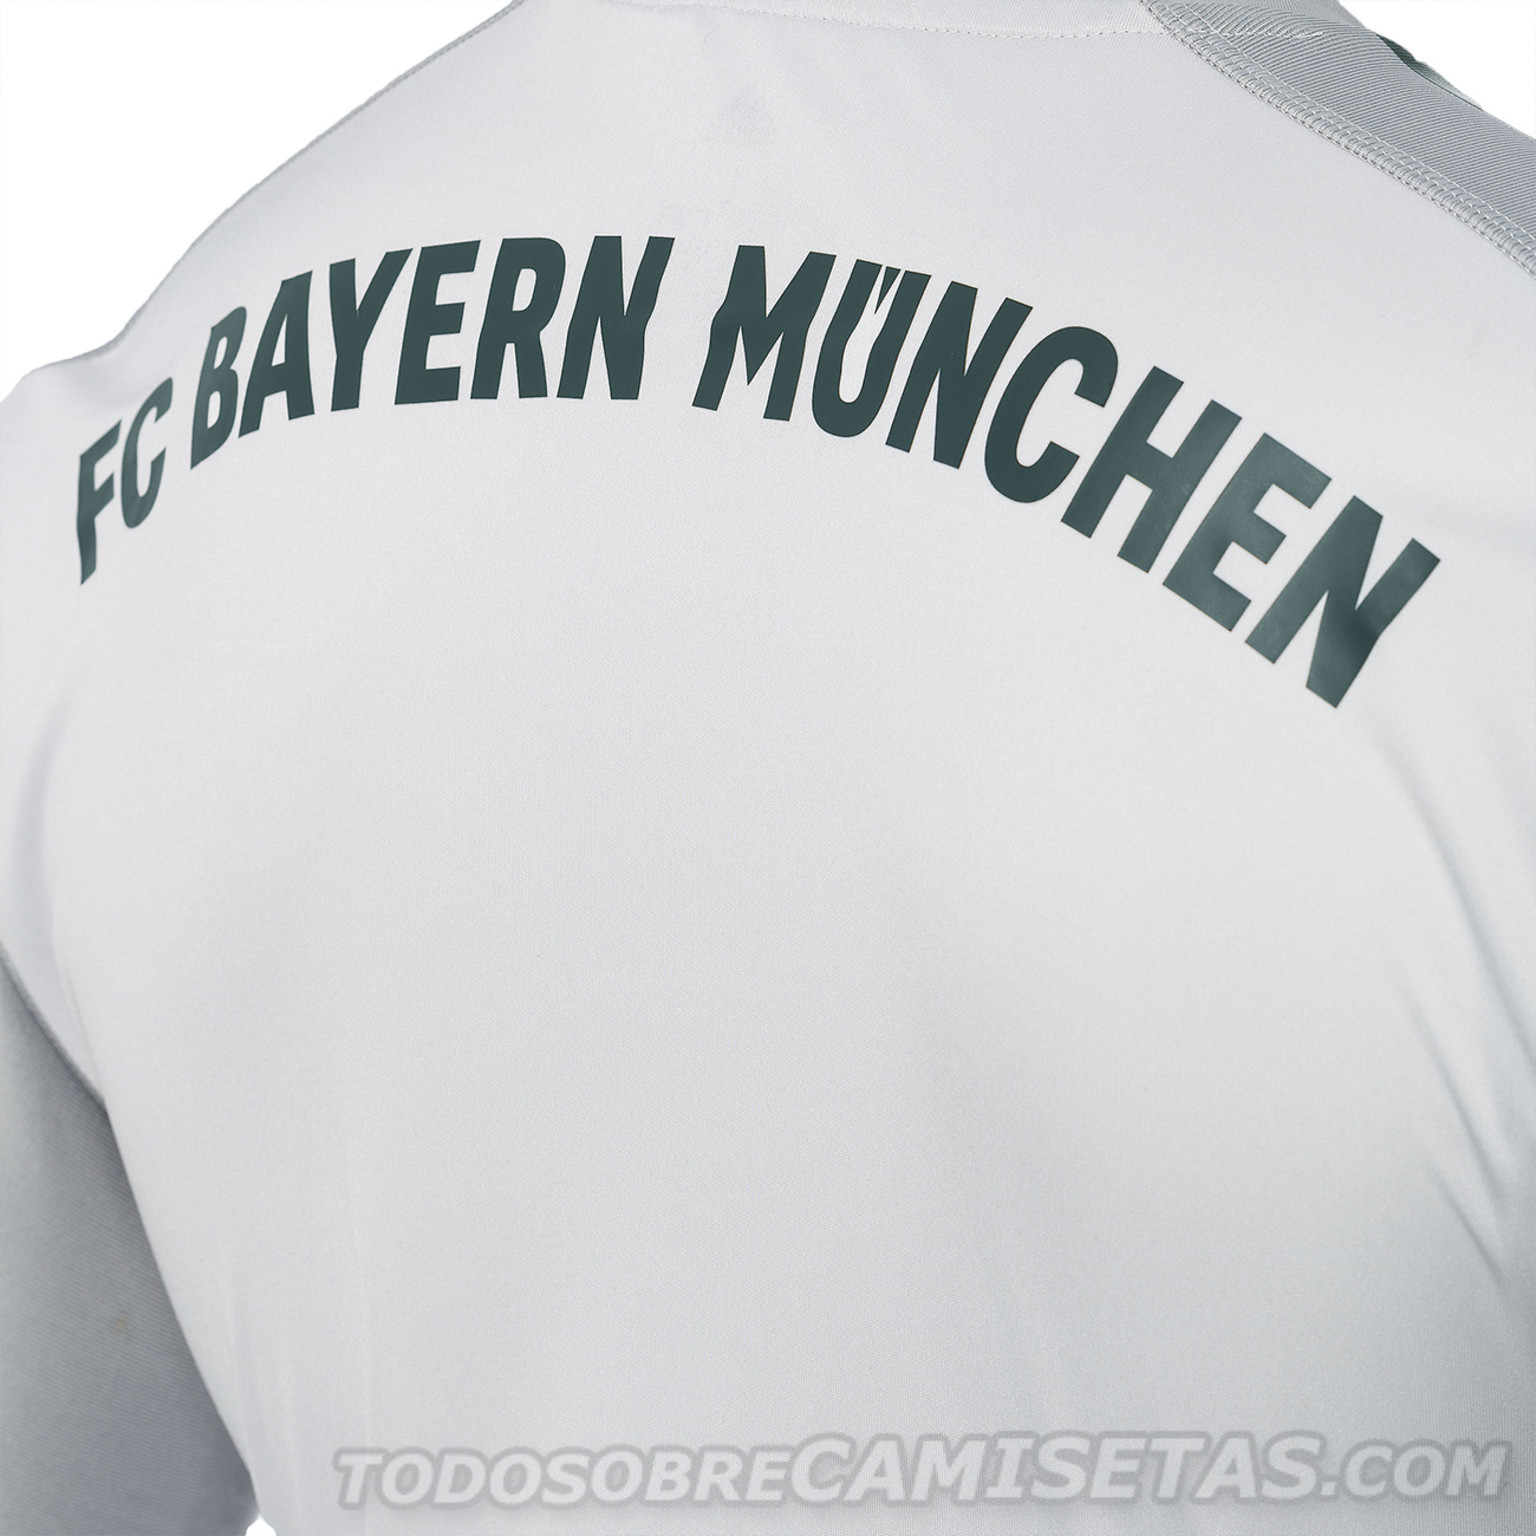 Bayern-Munich-2018-19-adidas-new-GK-home-kit-6.jpg